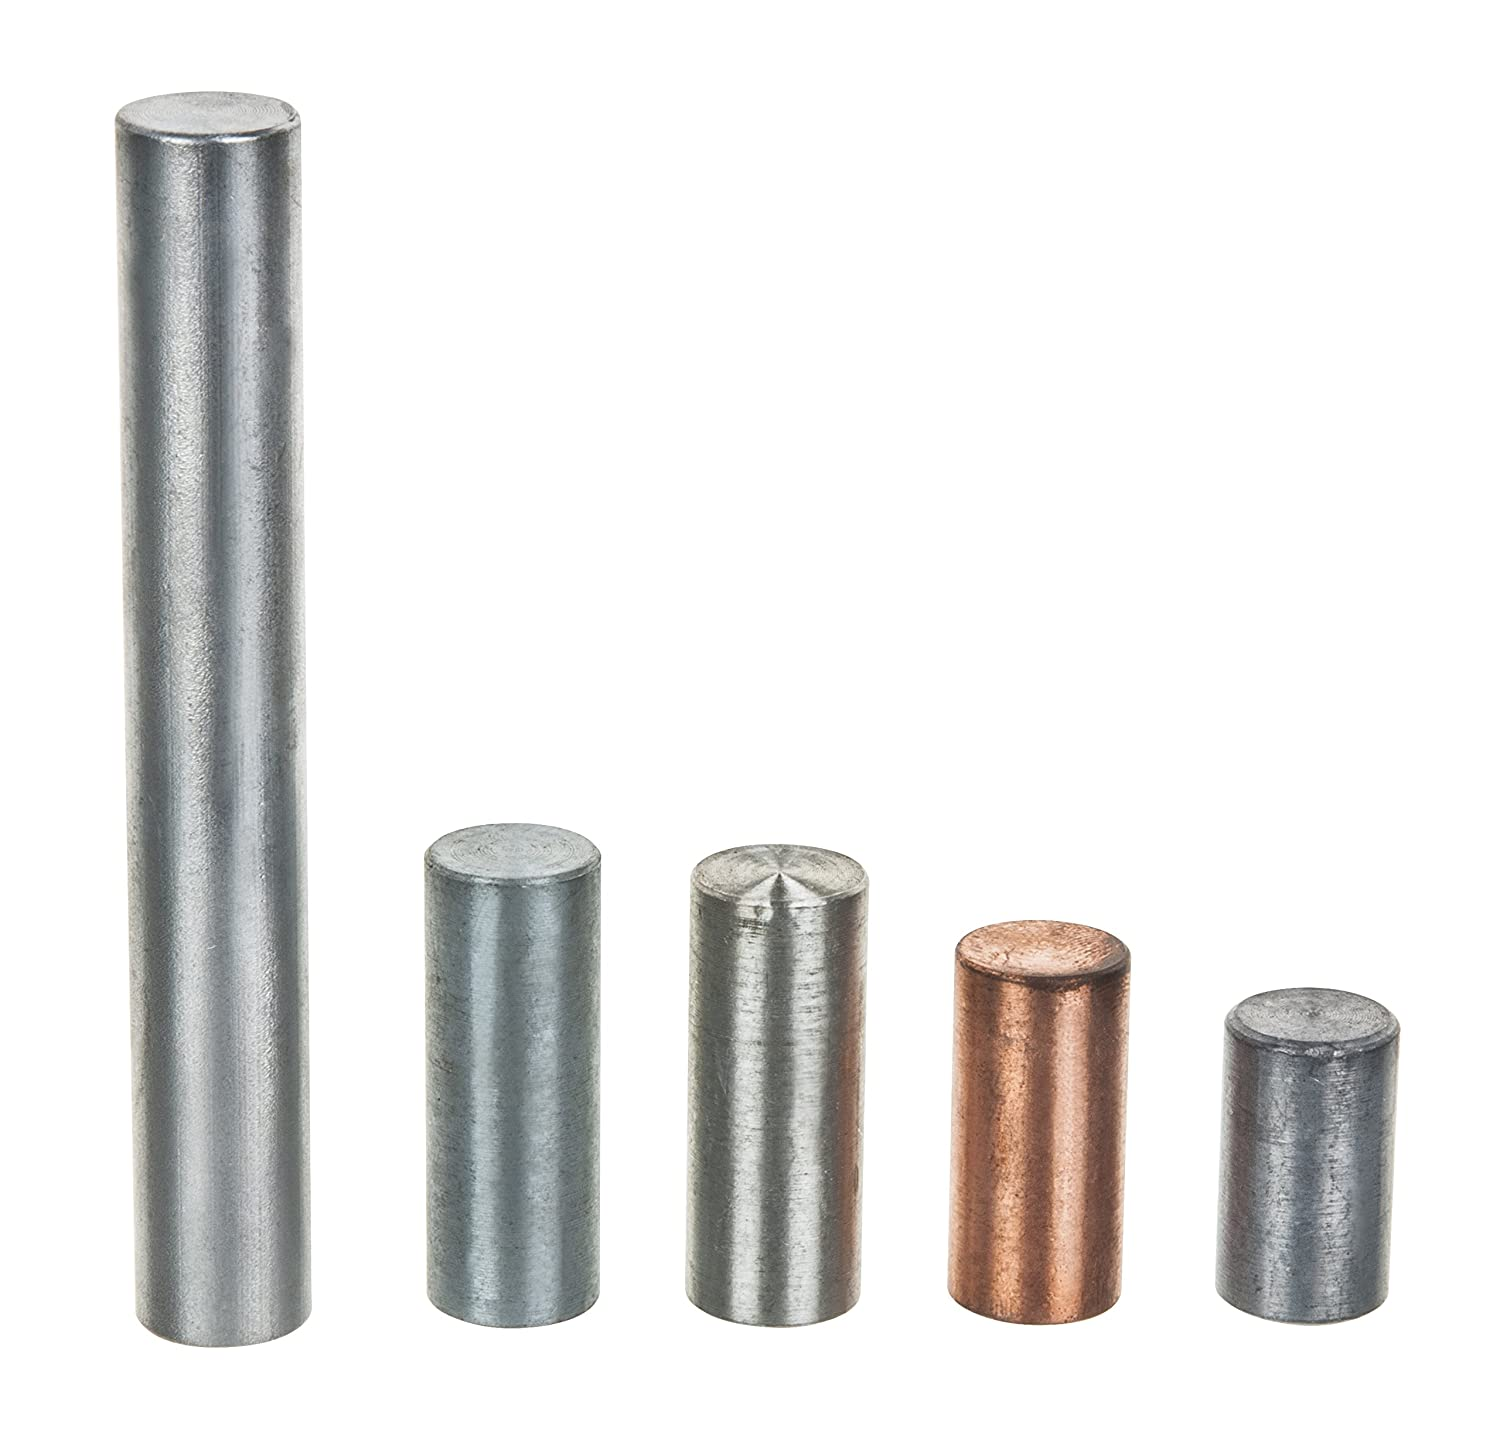 Specific Heat Activities Varied Lengths and 0.5 Diameter Aluminum Set of 5 Metals 30g Zinc Cylinders Copper Tin For use with Density Eisco Labs Varied Lengths and 0.5 Diameter Aluminum Specific Gravity Equal Mass Lead